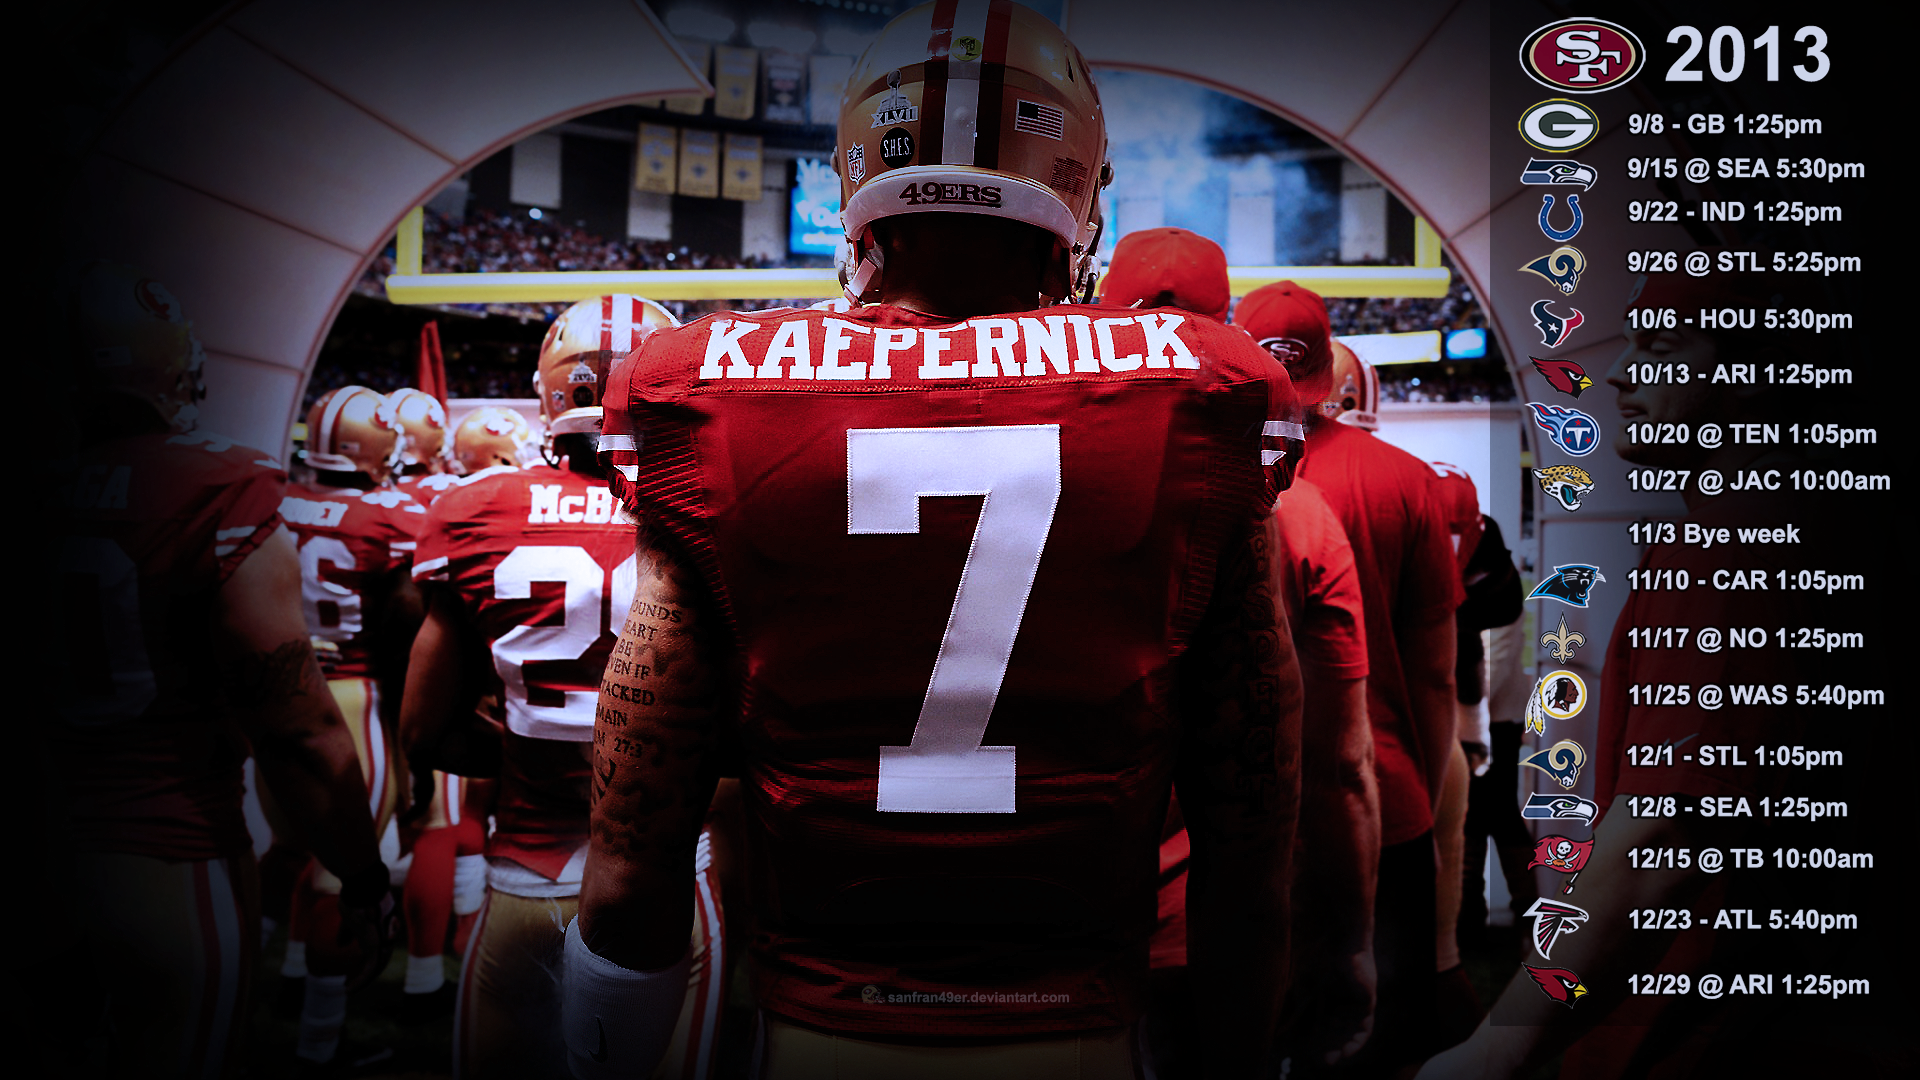 Kaepernick Wallpaper with 2013 schedule PST by 1920x1080